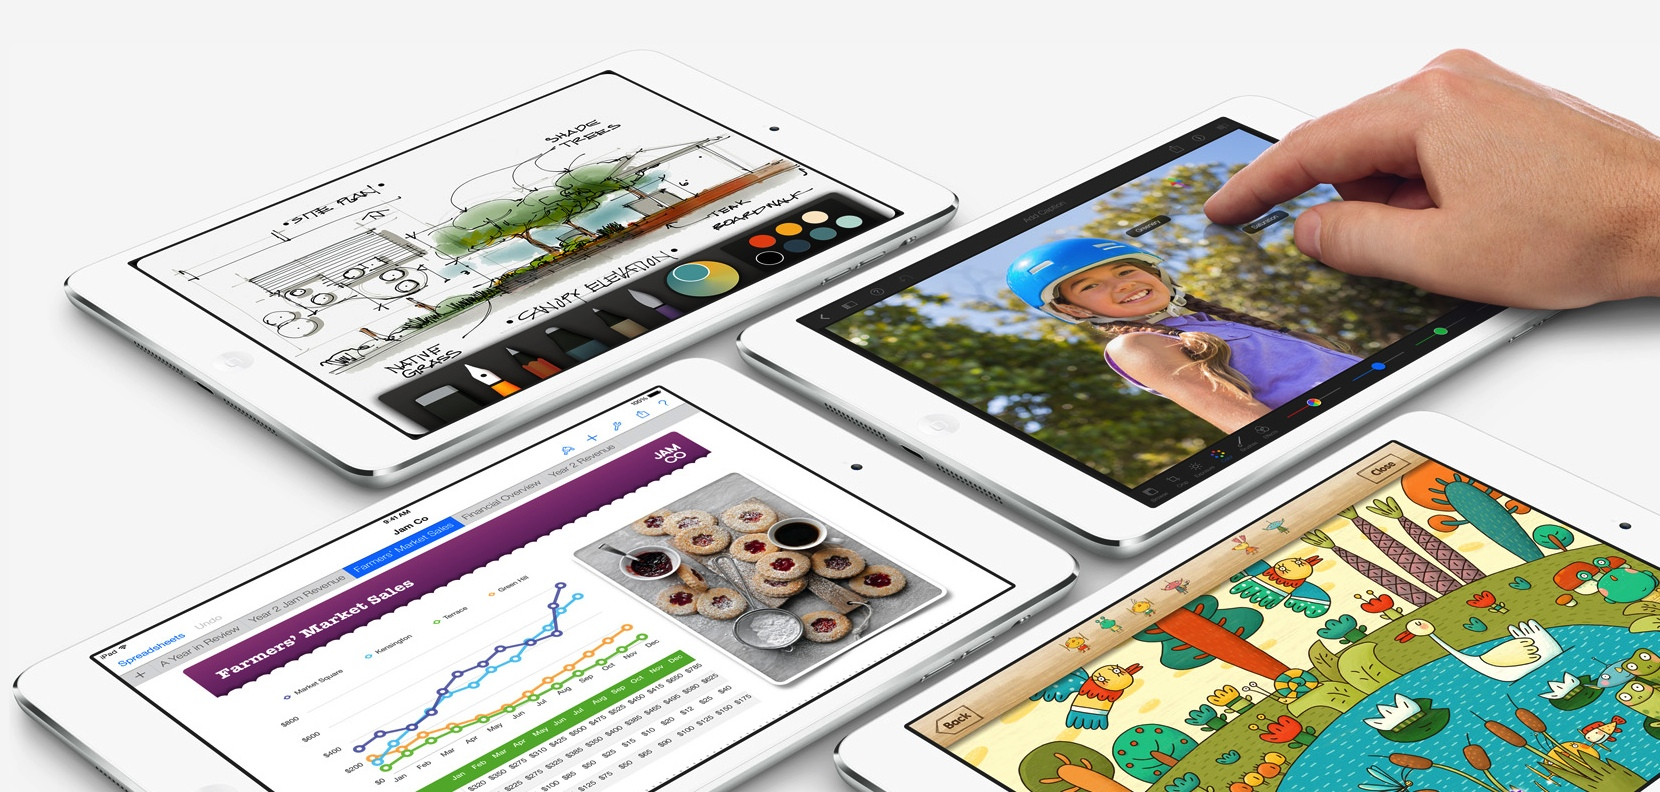 iPad Mini with Retina Display vs. Nexus 7: Tiny Tablets with Big Business Potential